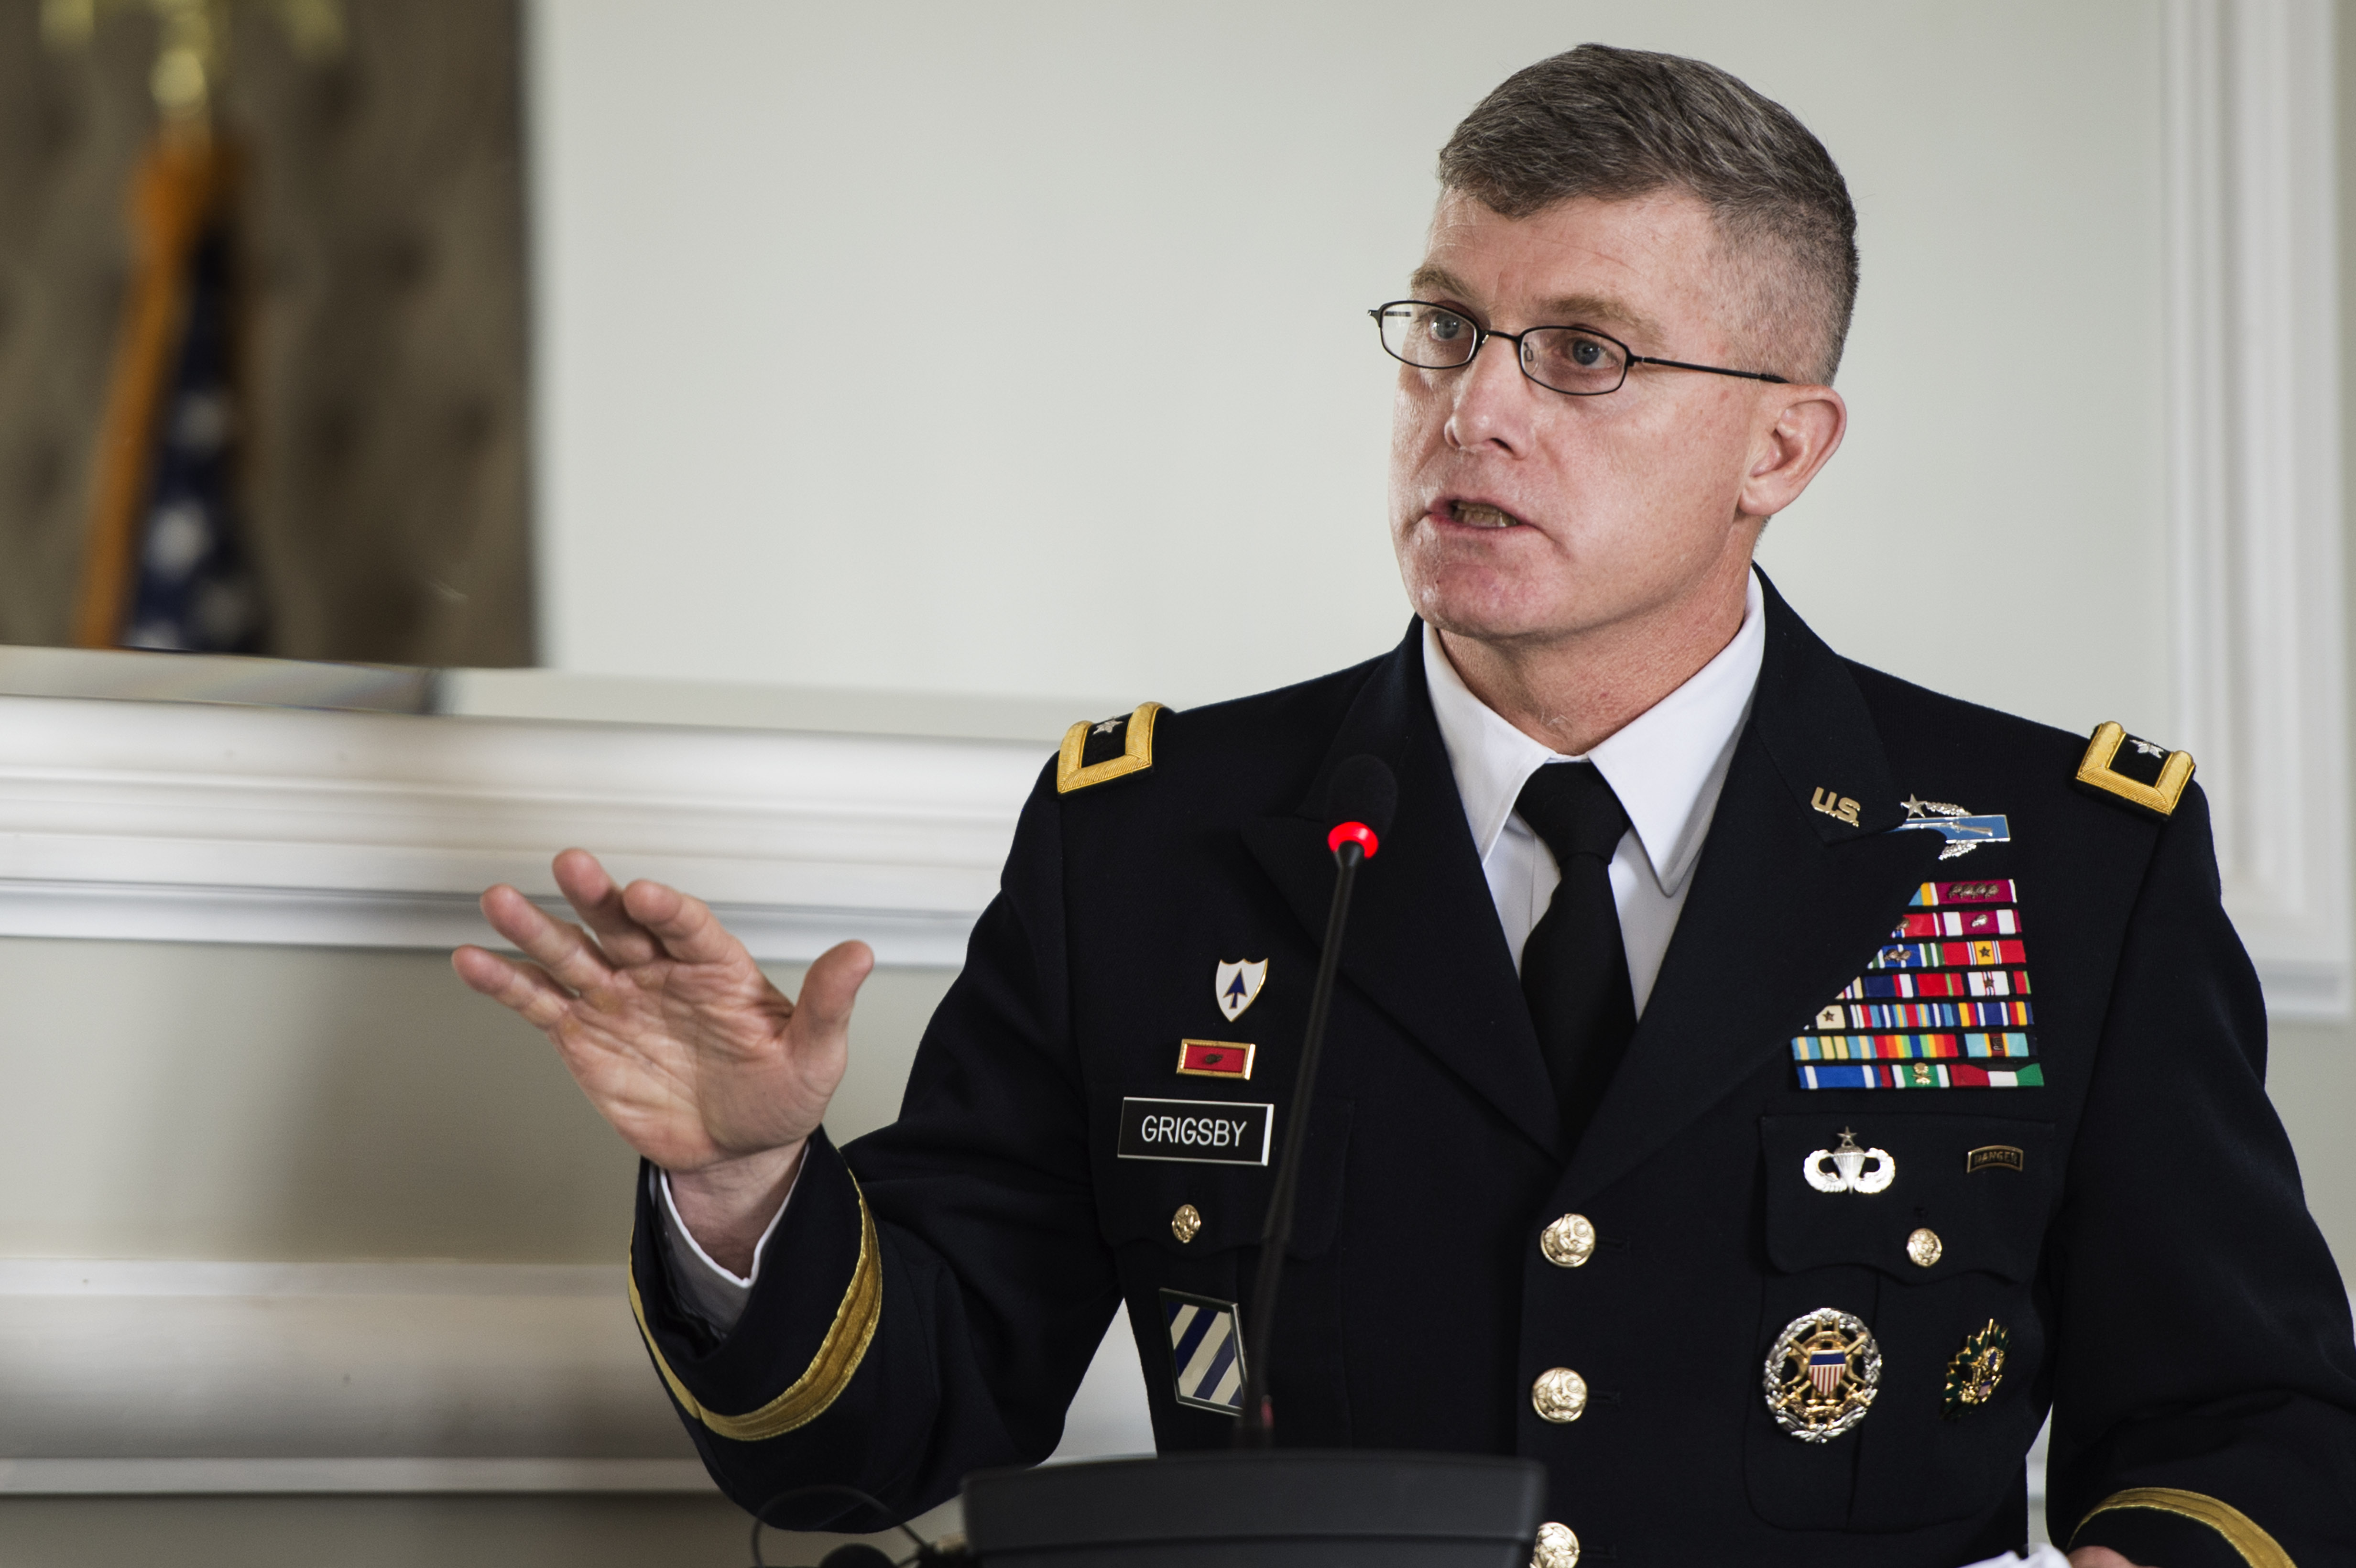 "150408-F-QZ836-170 Kenya(April 08,2015)U.S. Army Maj. Gen. Wayne W. Grigsby, Jr., Combined Joint Task Force-Horn of Africa commanding general, makes opening remarks at the Senior Leaders Summit, ""Professionalization of Forces in the Horn of Africa,"" in Nairobi, Kenya, Apr. 8, 2015. The conference brought together senior leadership from U.S. Africa Command; notably Ambassador Phillip Carter, (Deputy to the Commander for Civil-Military Engagement of United States Africa Command), CJTF-HOA and East Africa nations for a three-day conference guided around the Profession of Arms. (U.S. Air Force Photo by Staff Sgt. Carlin Leslie)"